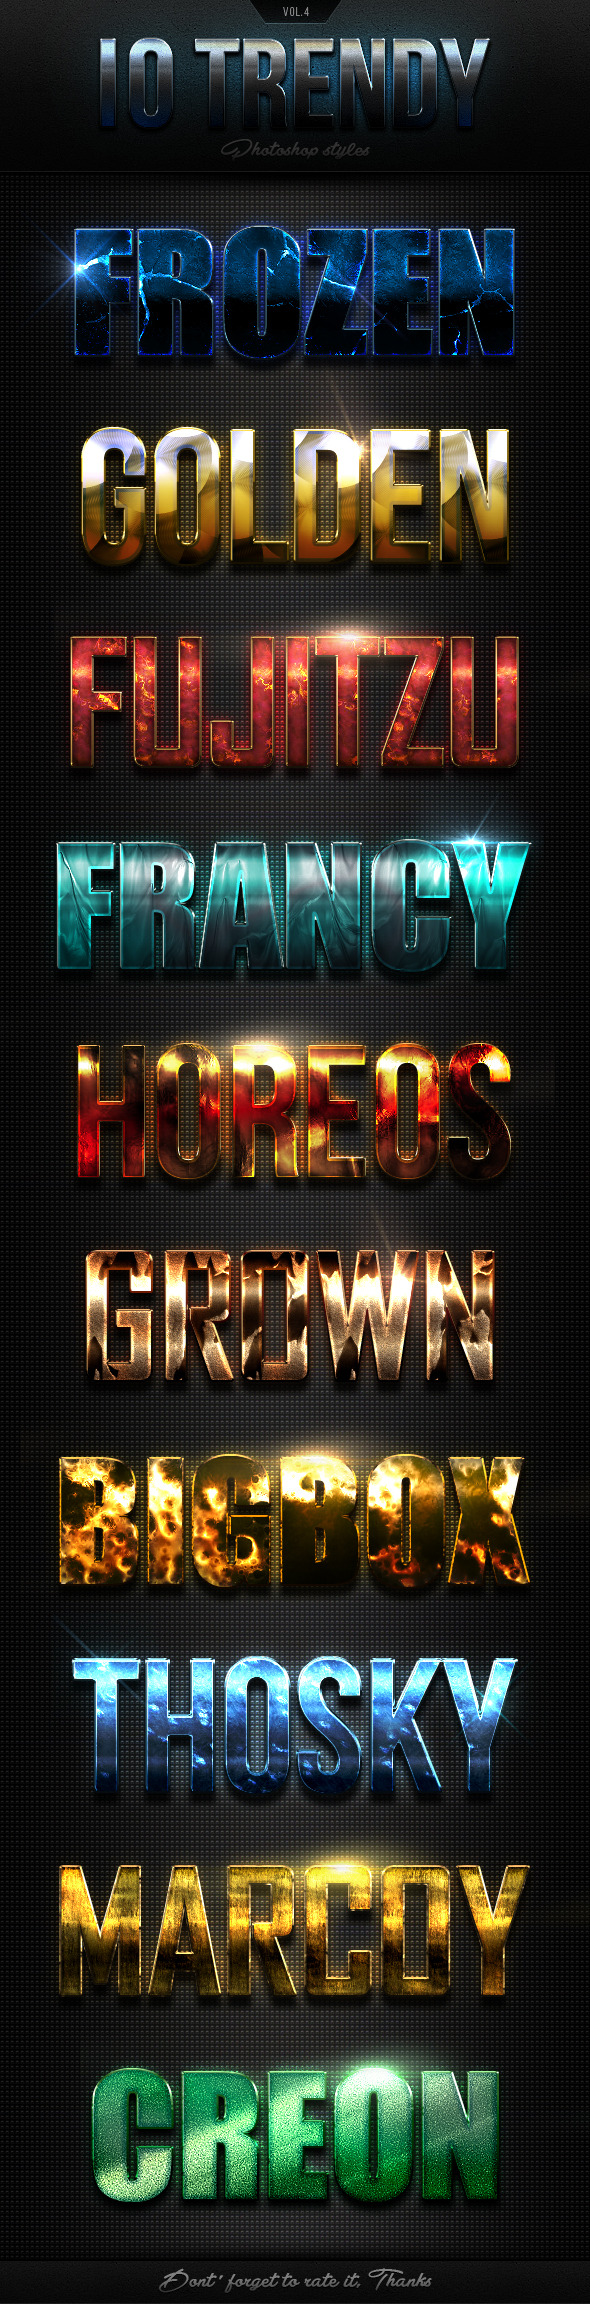 GraphicRiver 12 Trendy Photoshop Styles Vol.4 10484918